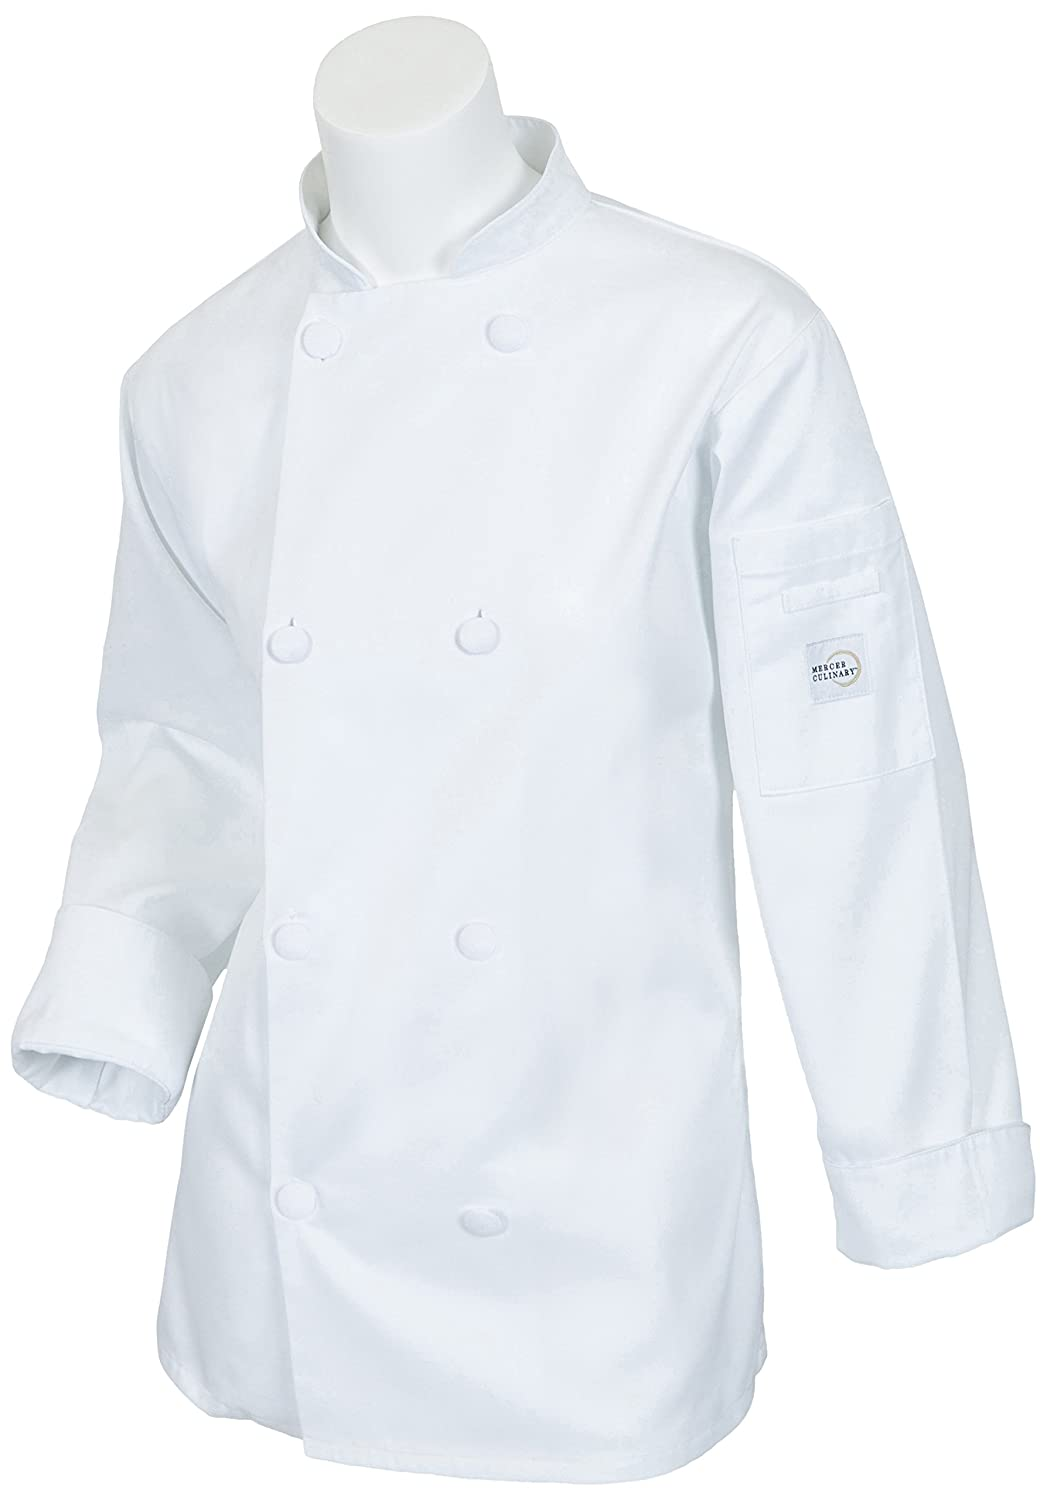 Mercer Culinary Millennia Women's Cook Jacket, X-Large, White M60022WH1X